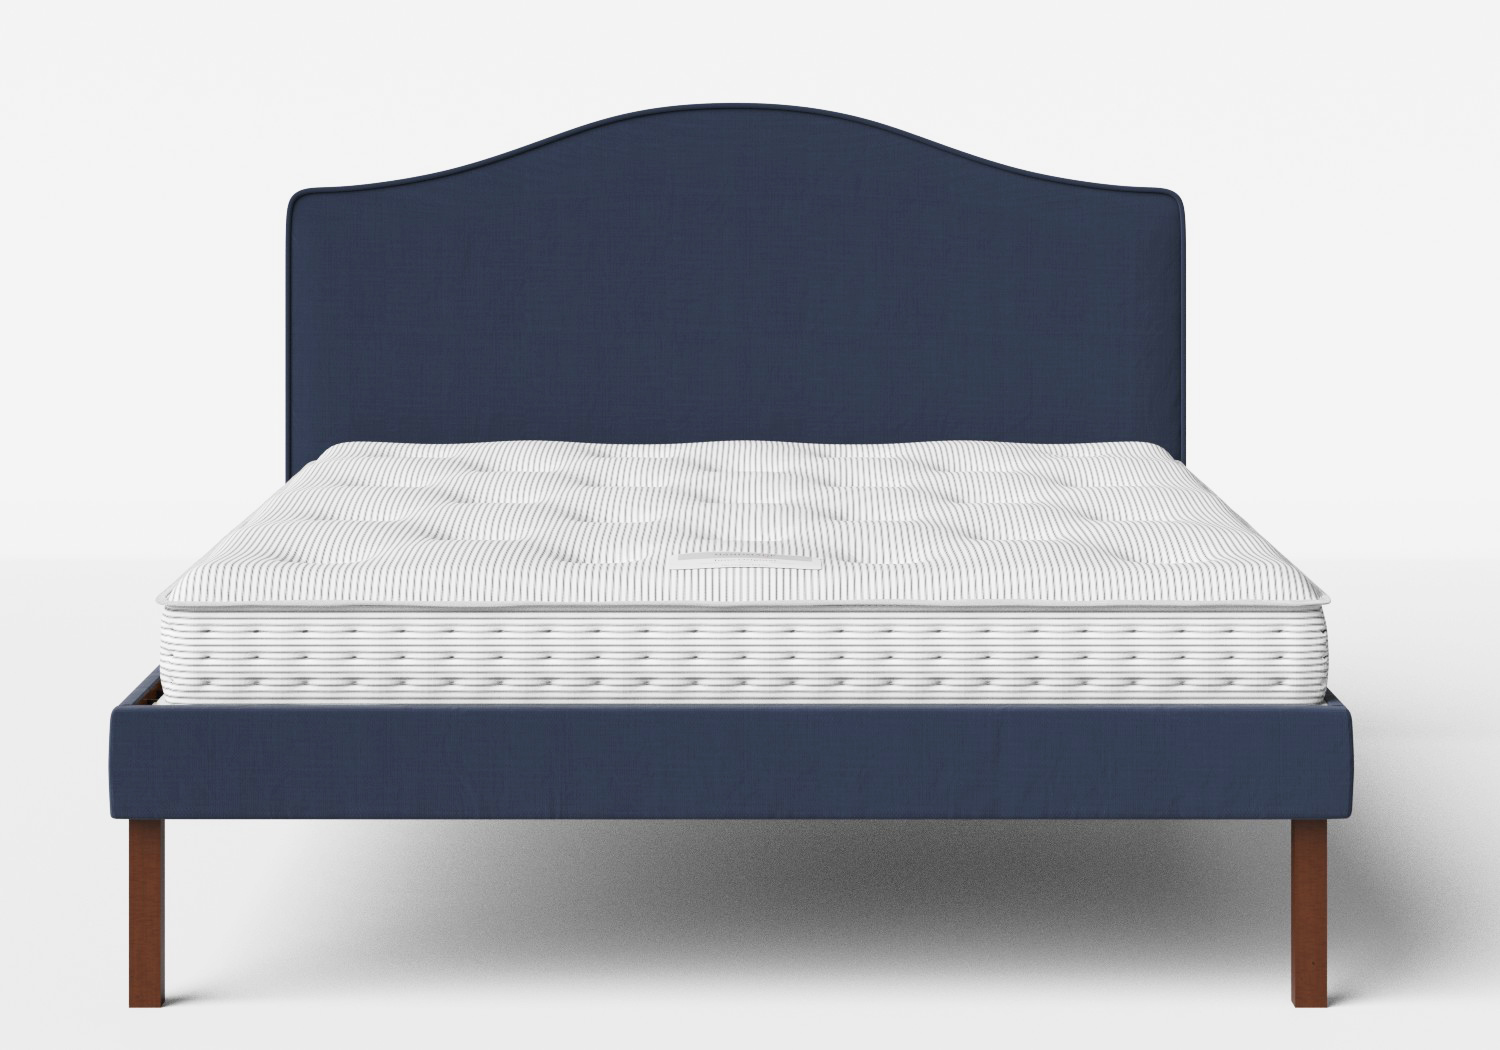 Yoshida Upholstered Bed with Navy fabric with piping shown with Juno 1 mattress